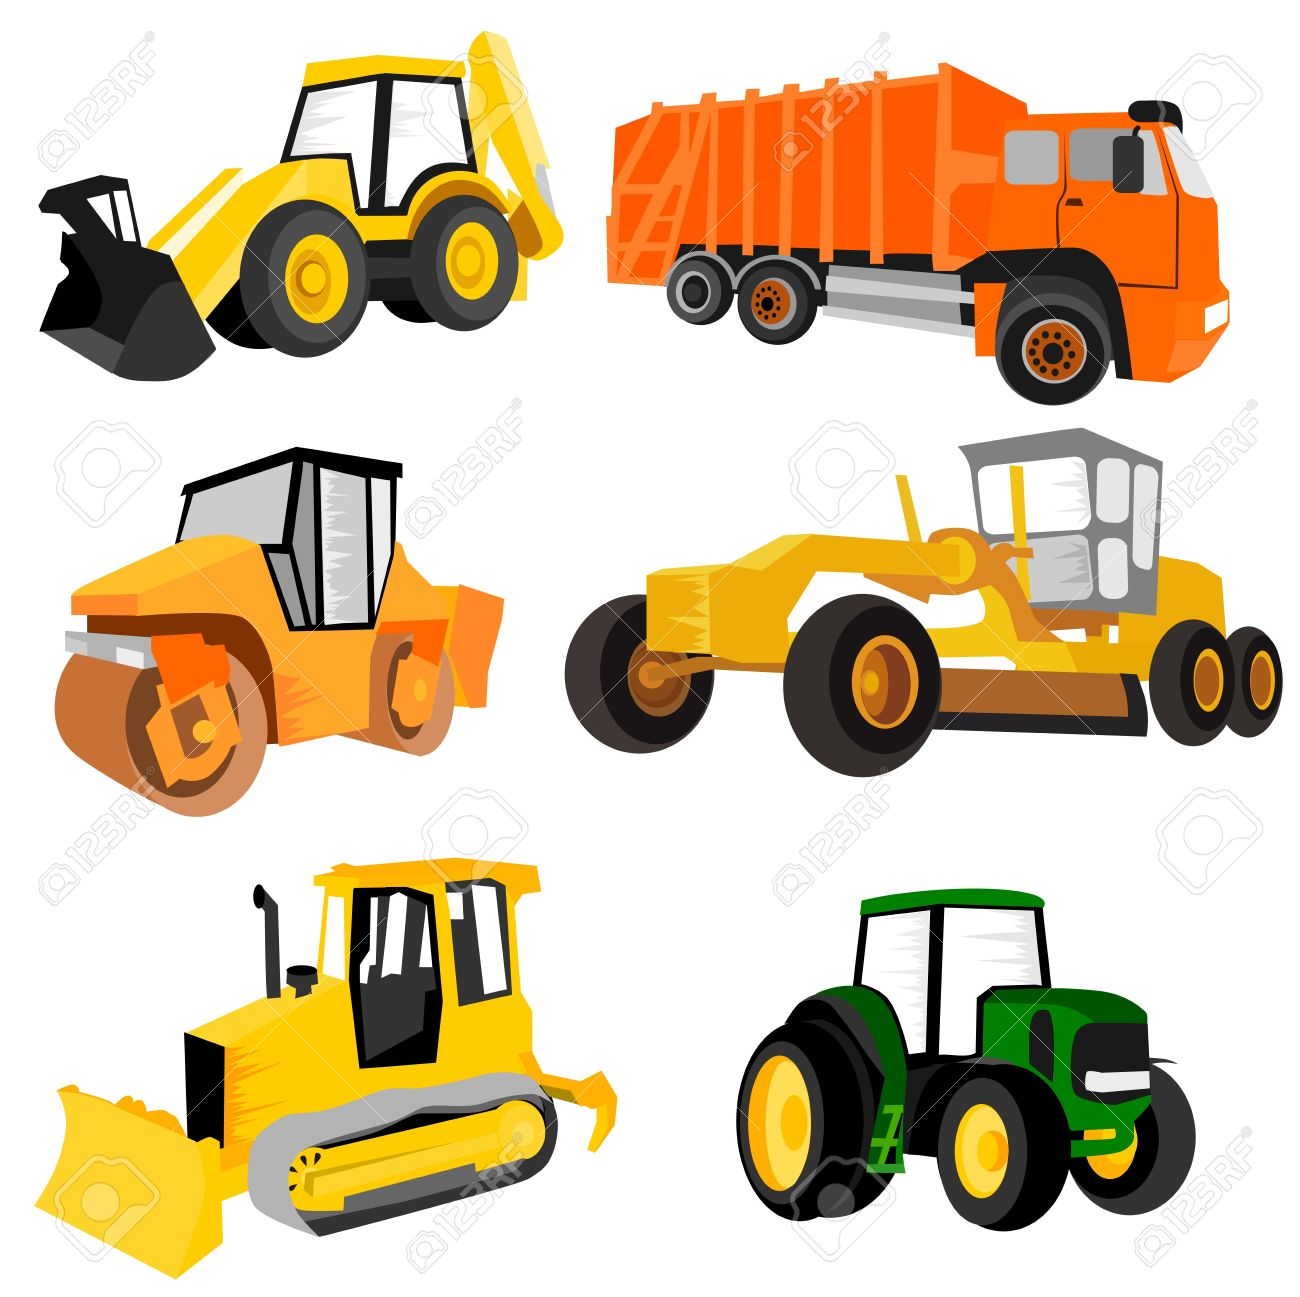 Working Machines Royalty Free Cliparts, Vectors, And Stock.